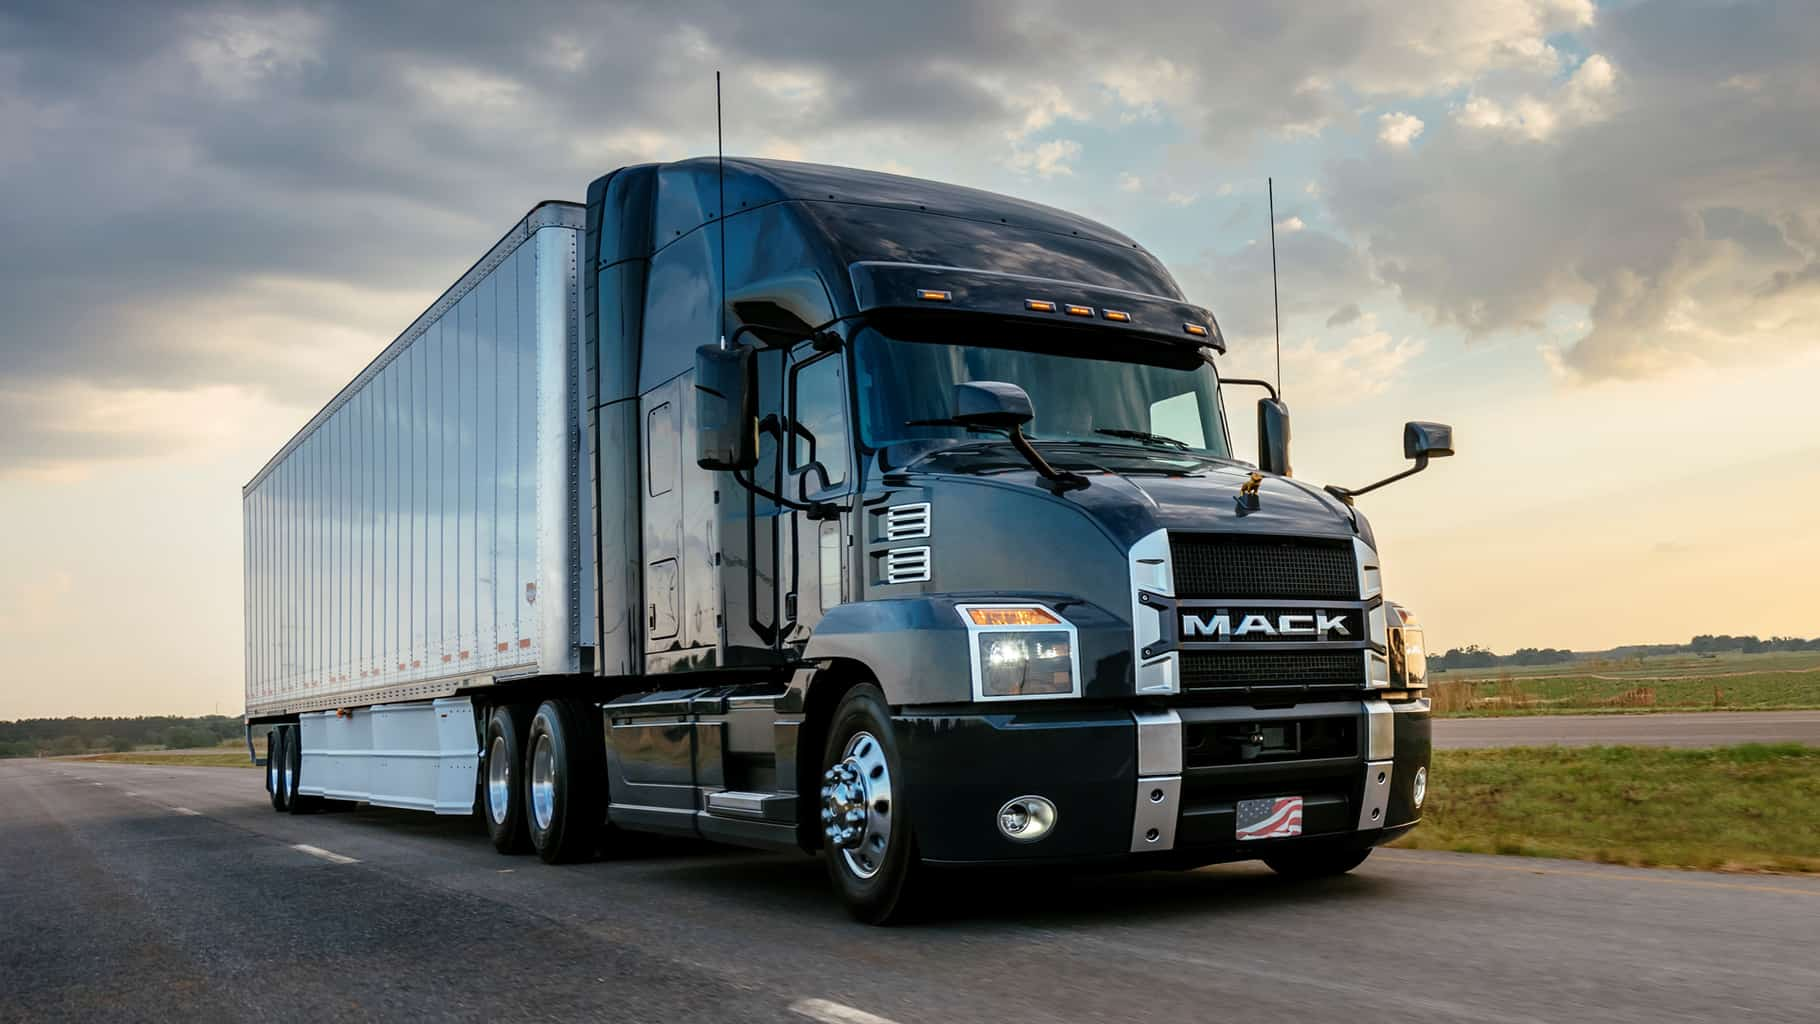 Four Of The Best Class 8 Truck Manufacturers For The Money Freightwaves